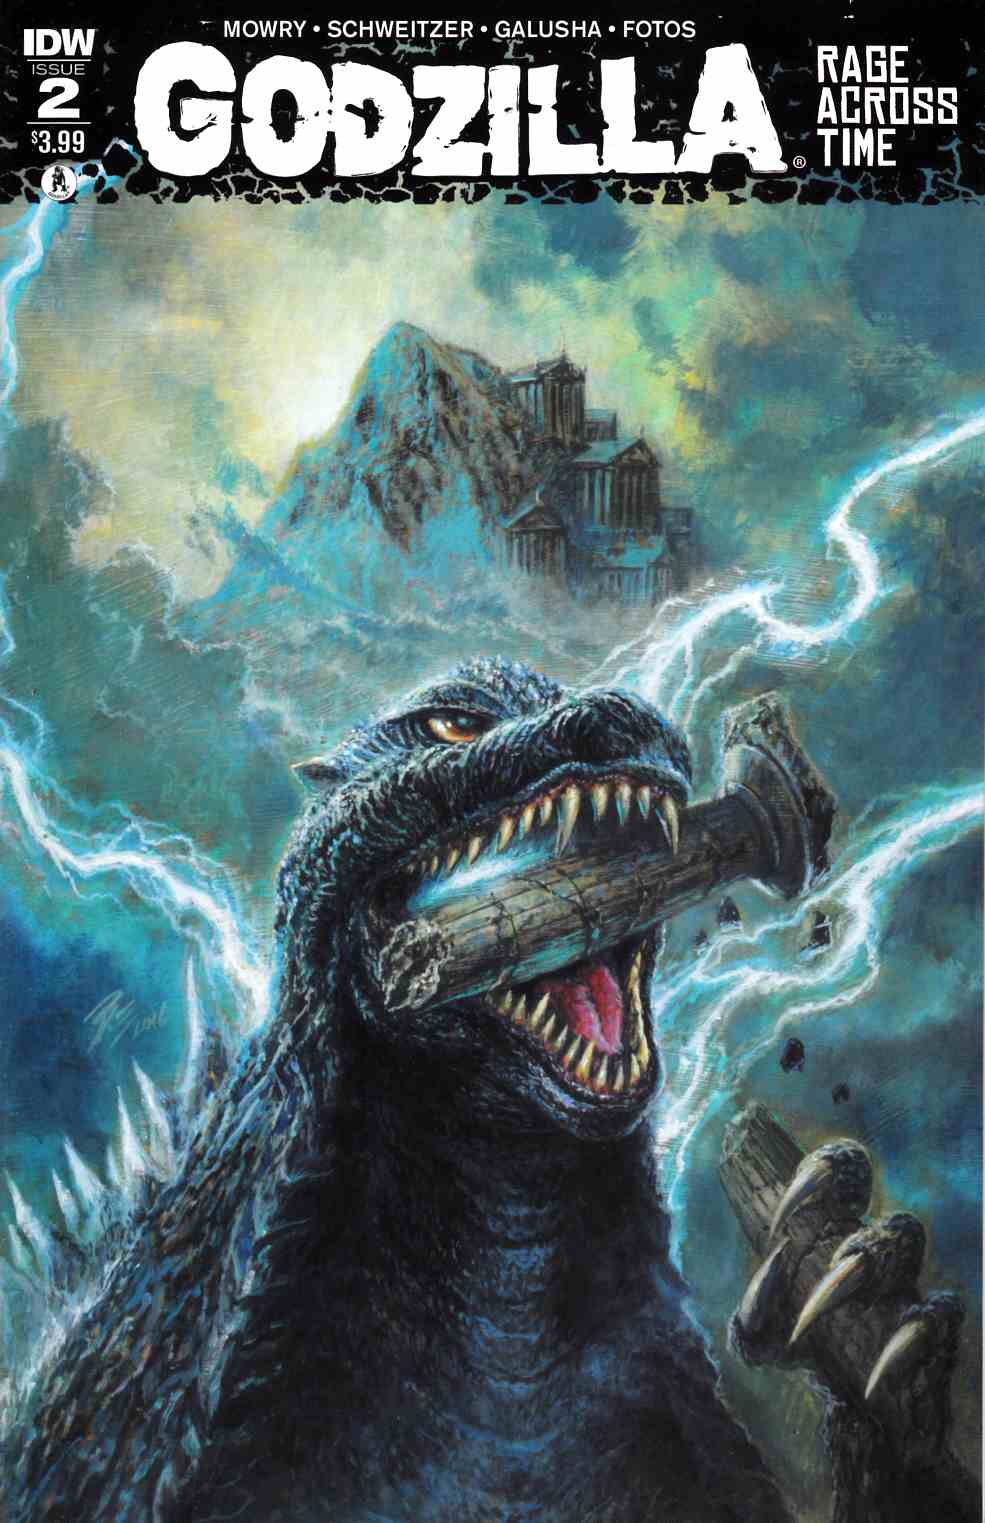 Godzilla Rage Across Time #2 [IDW Comic] THUMBNAIL